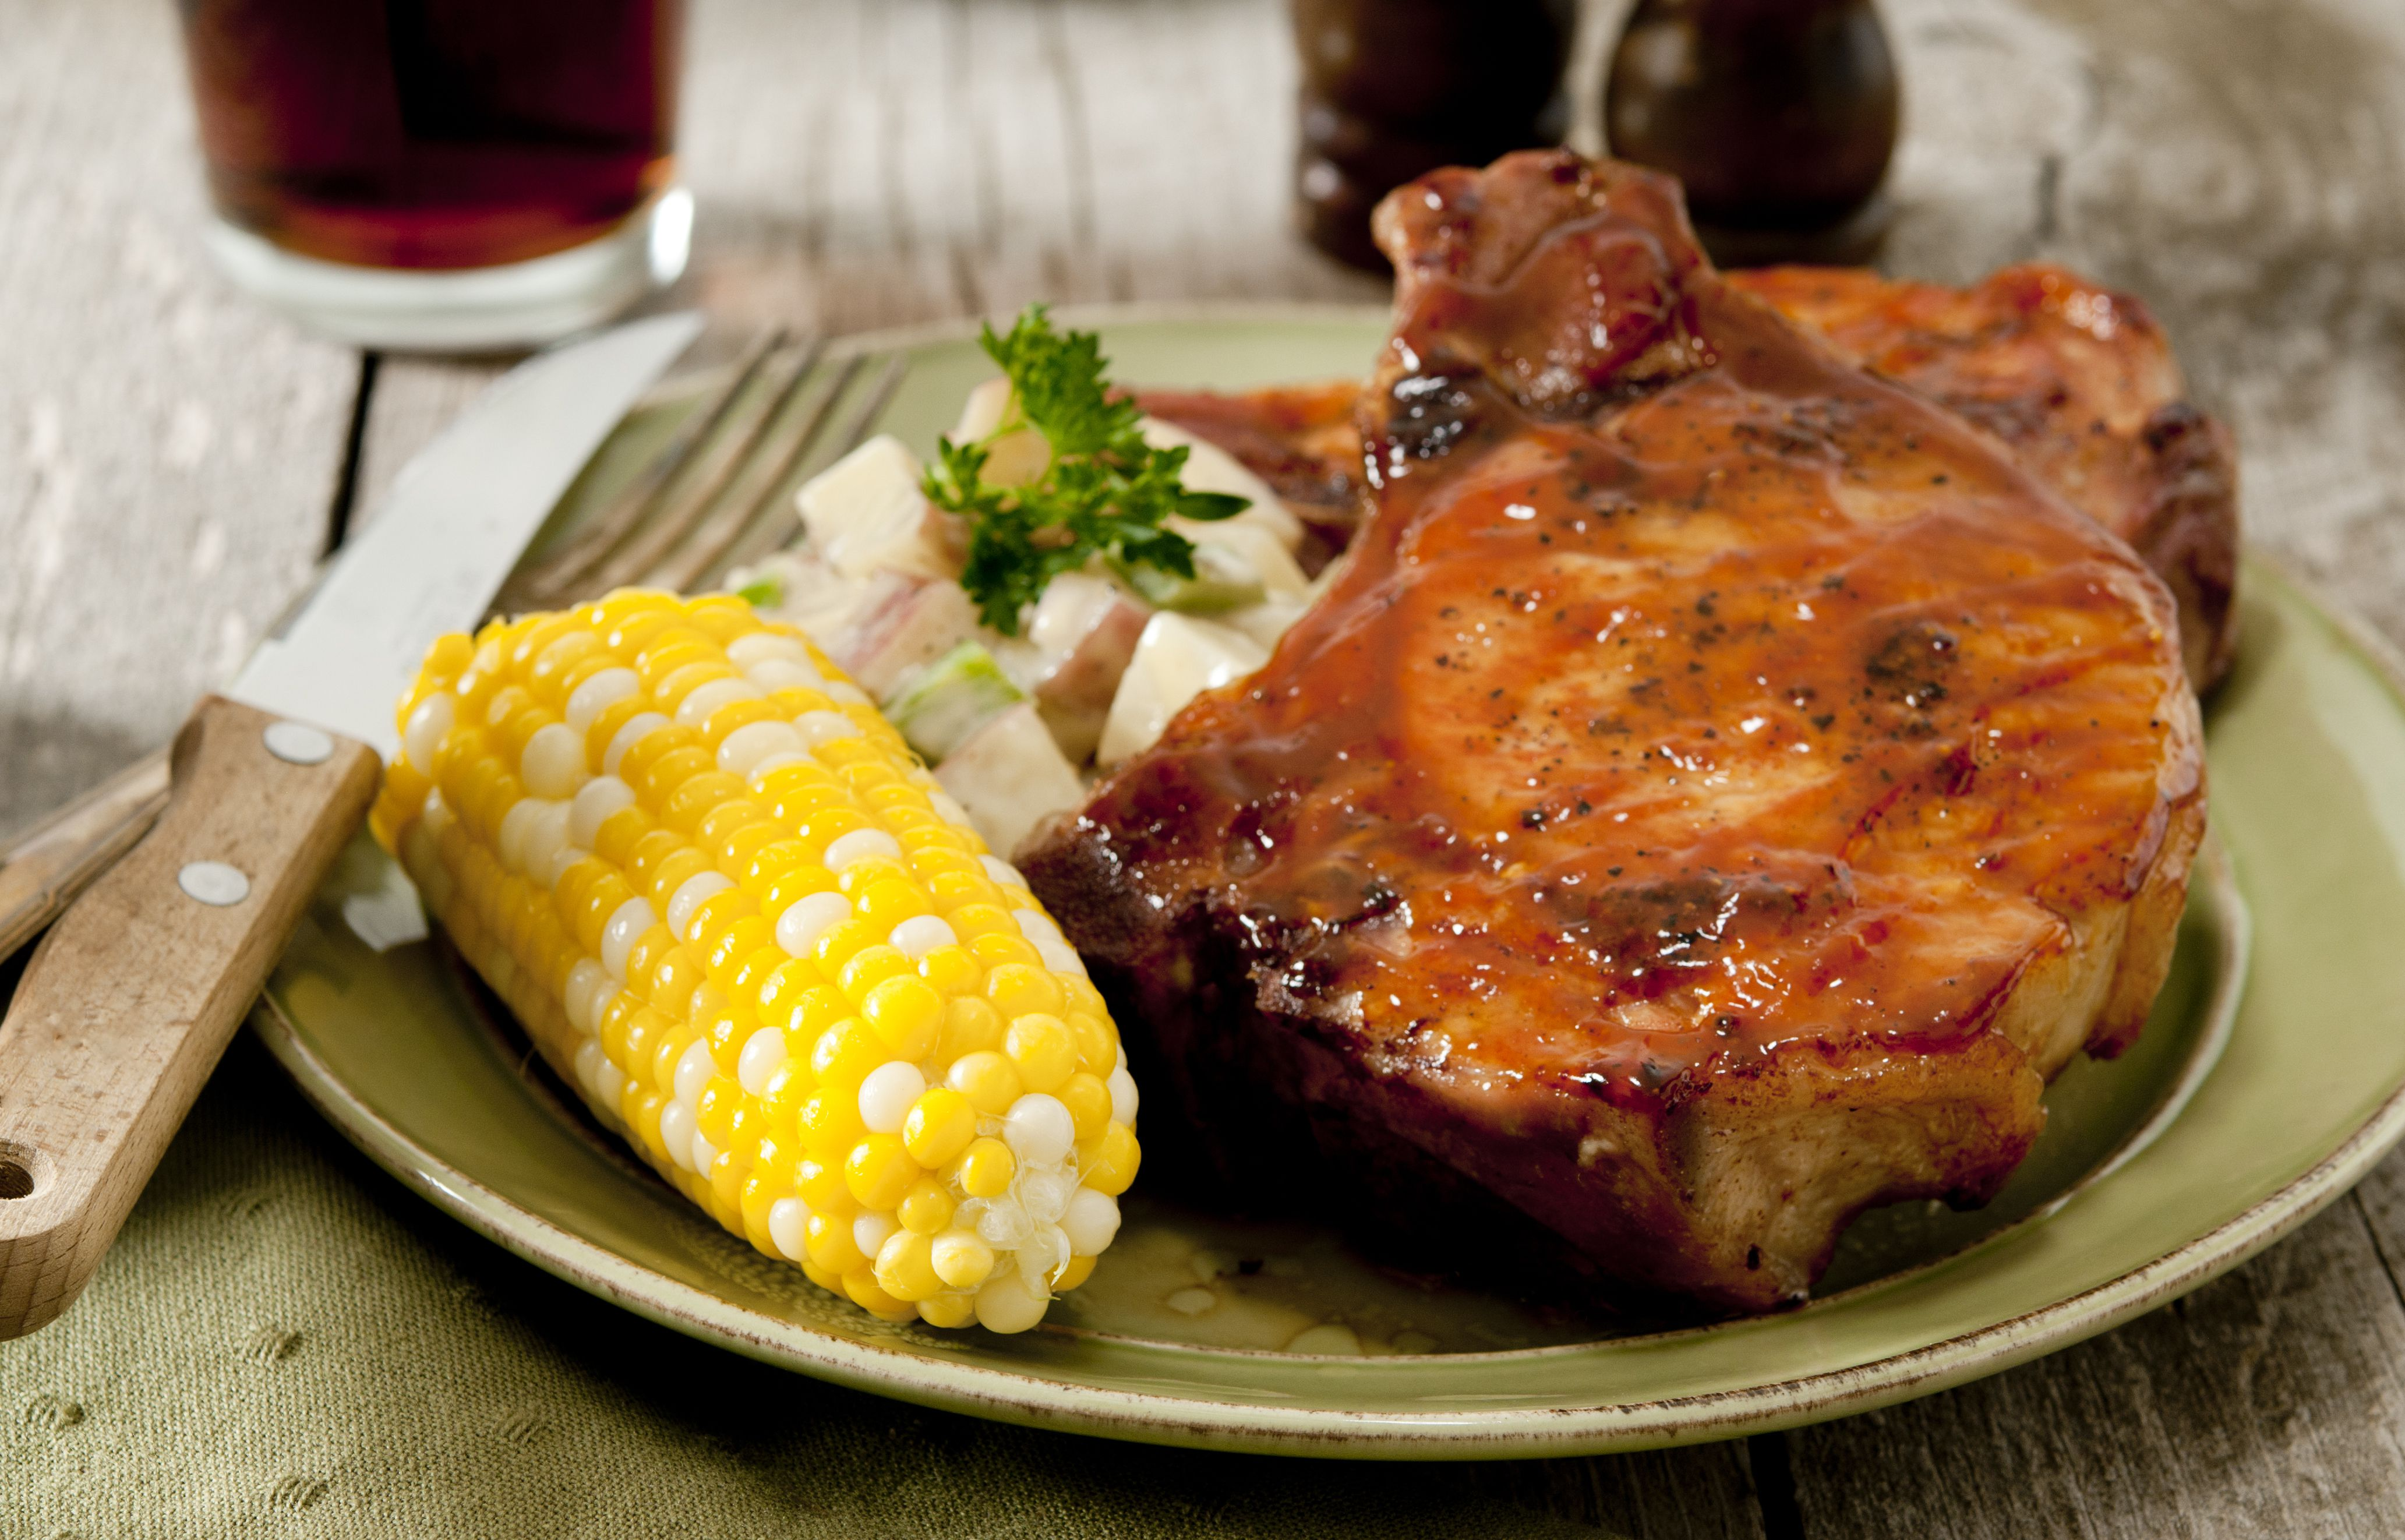 Baked Pork Chops With Barbecue Sauce Recipe